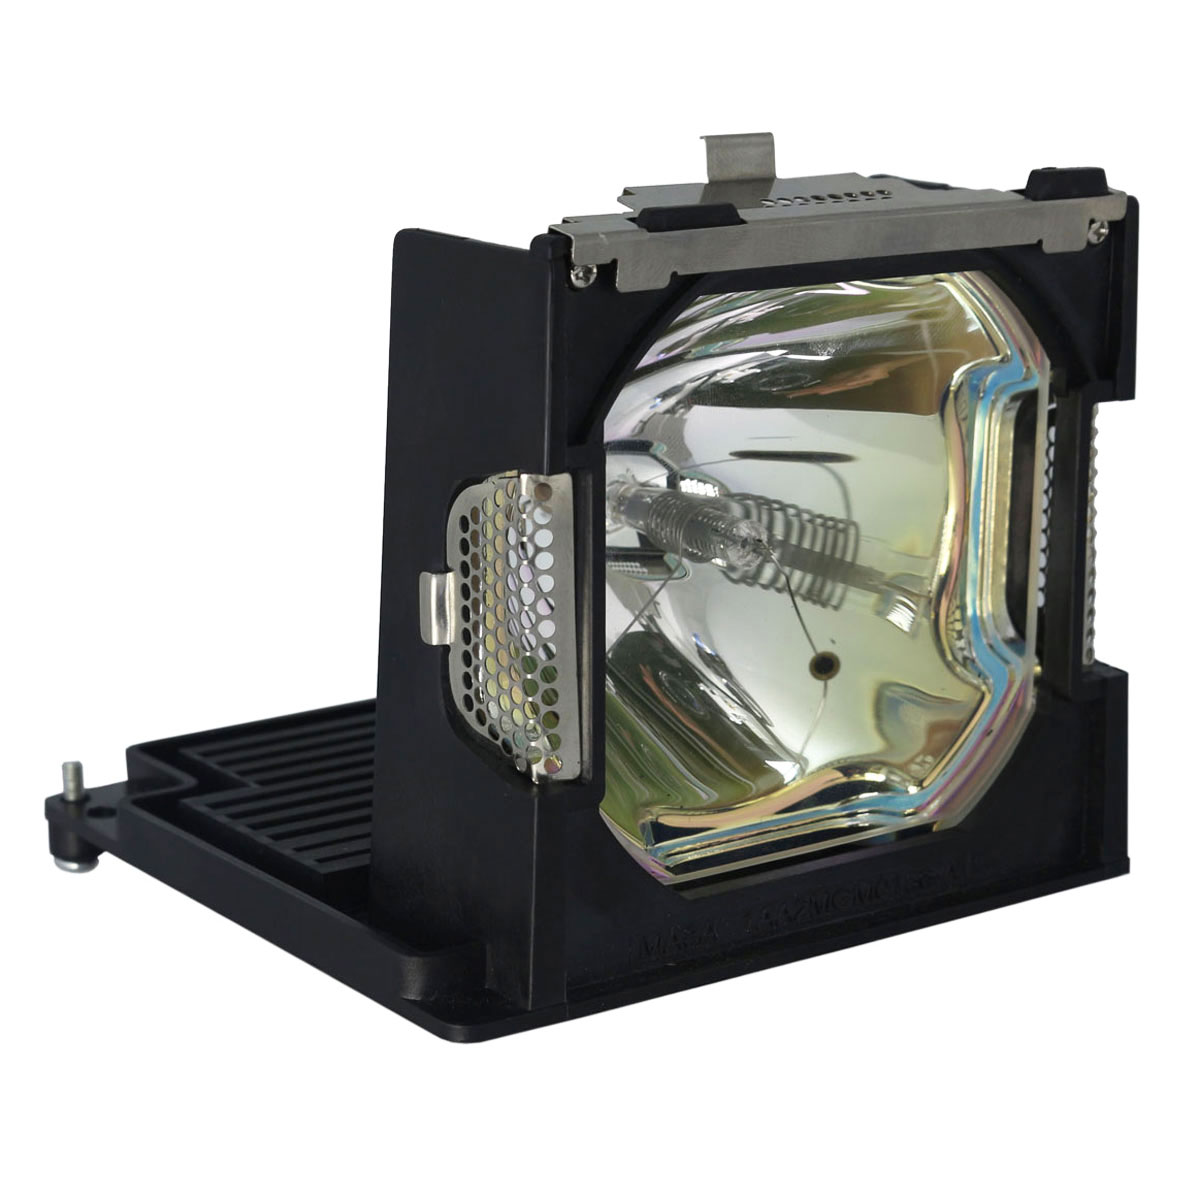 Original Philips Projector Lamp Replacement for Eiki LC-X985 (Bulb Only) - image 4 de 5